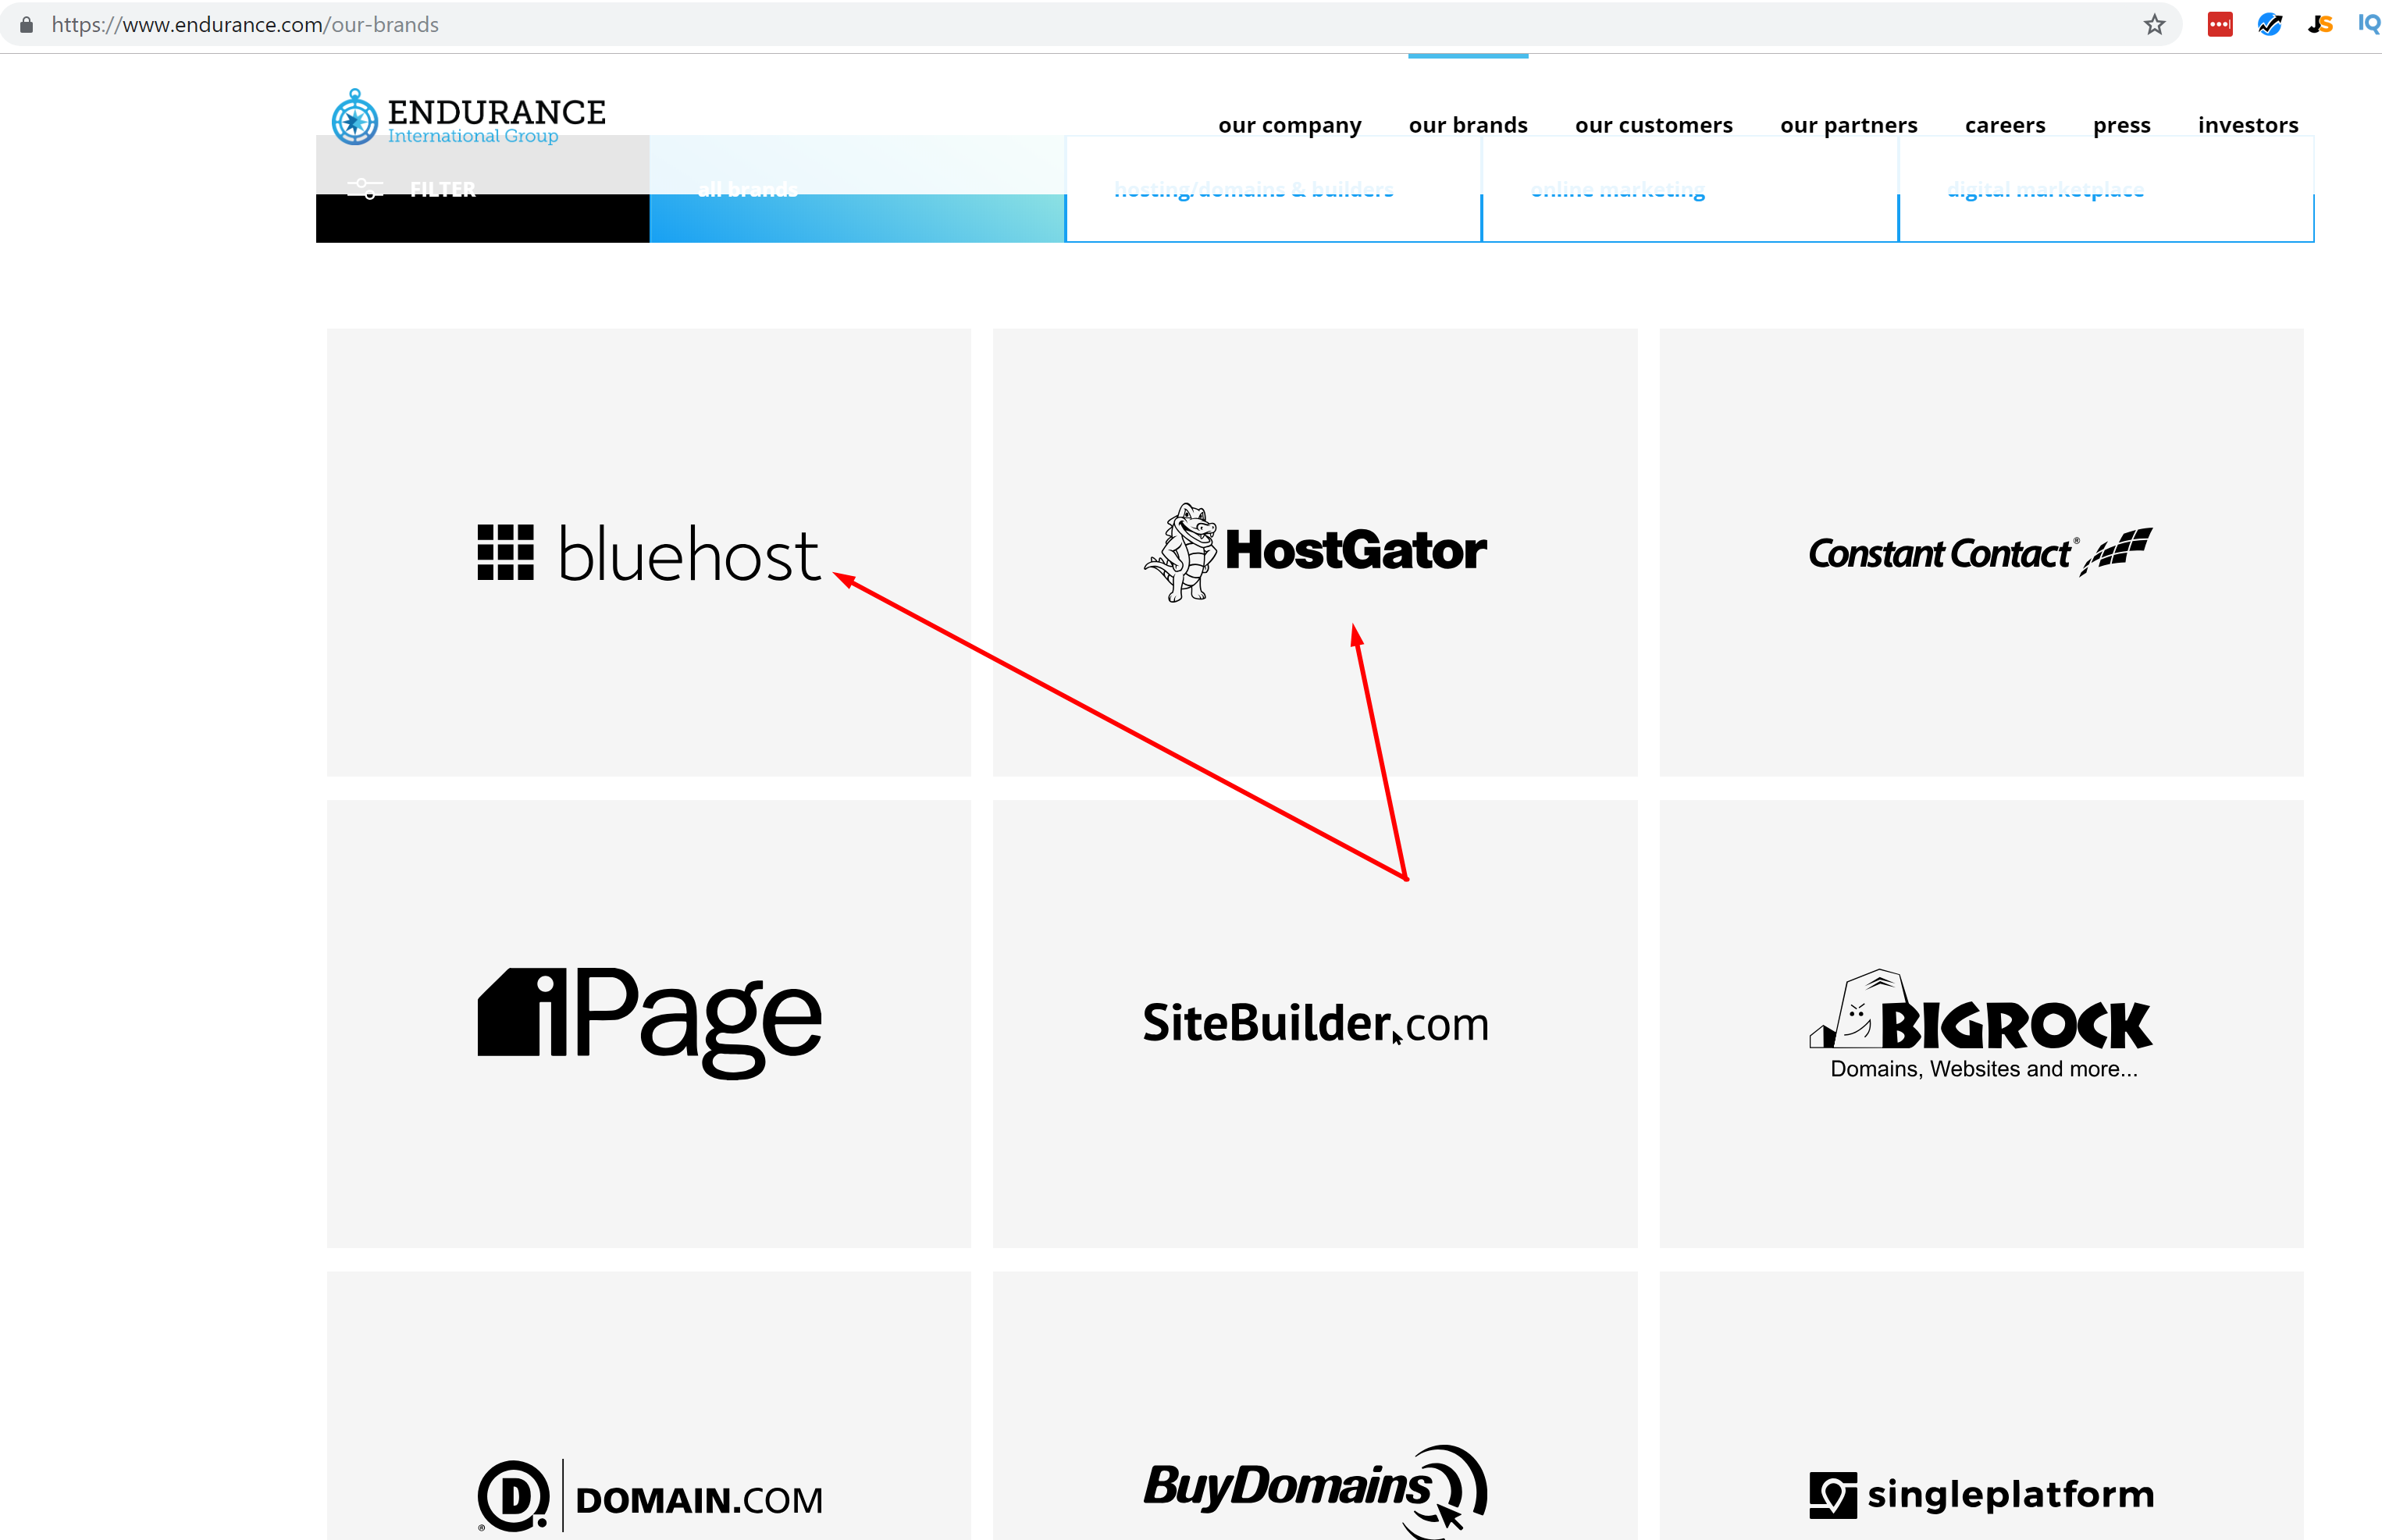 Endurance International Group Owns Bluehost and Hostgator